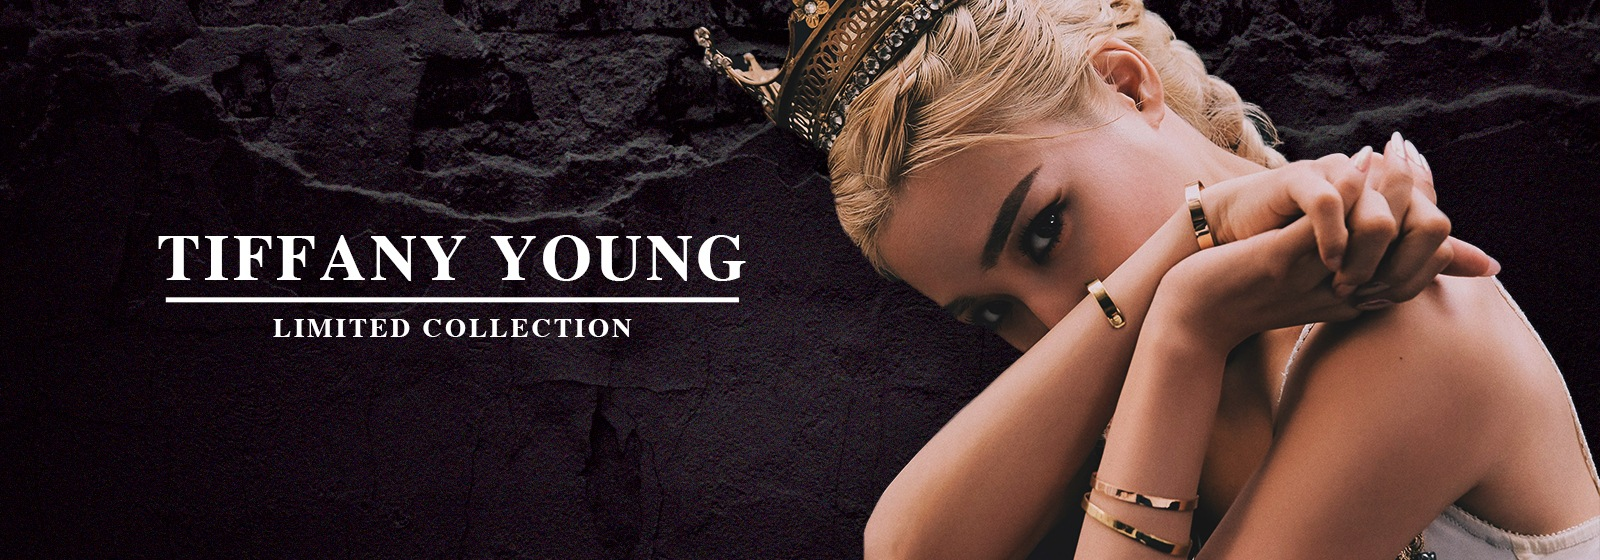 Tiffany Young's Limited Collection Store